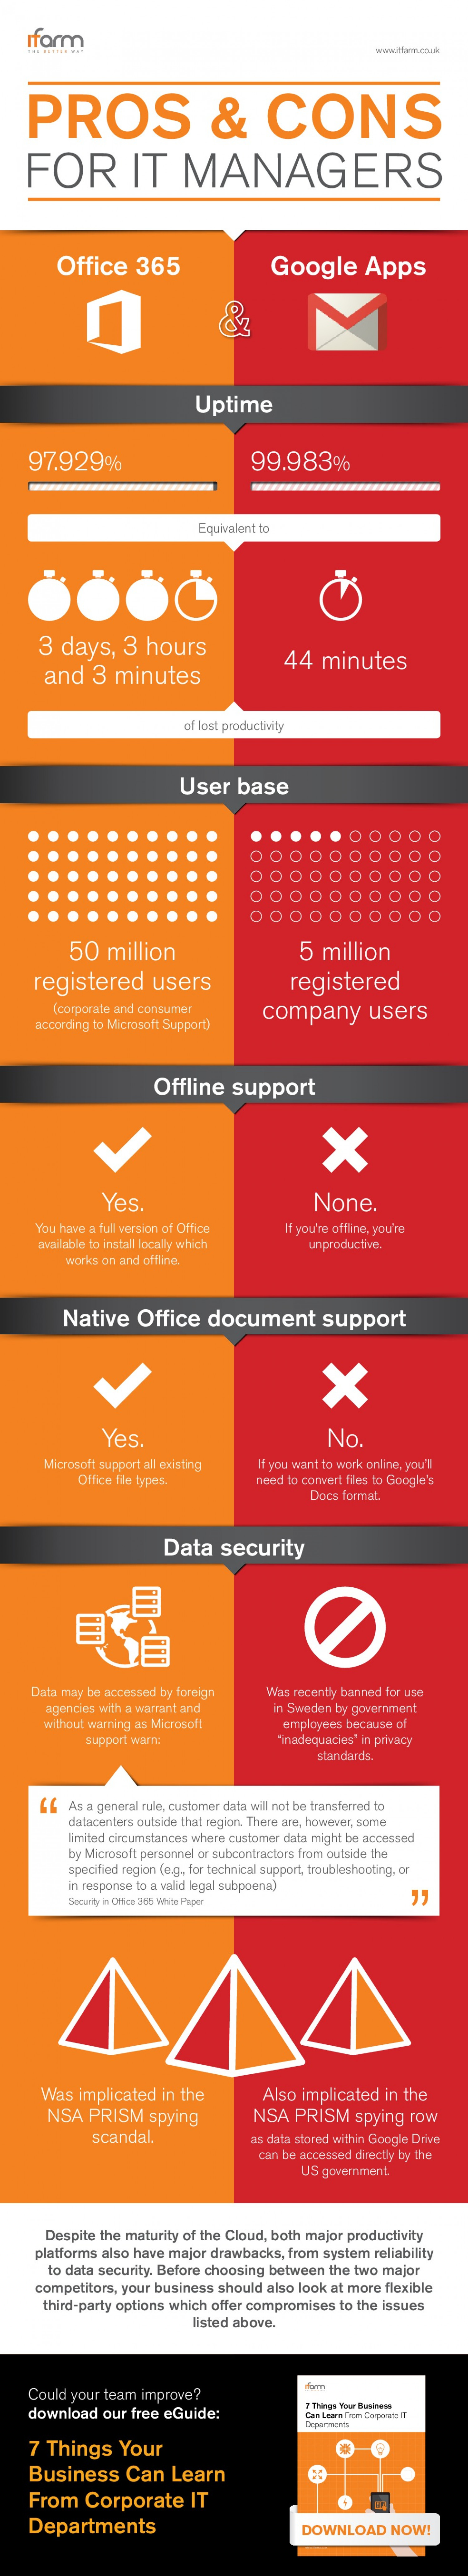 Pros and cons for IT managers: Office 365 vs Google Apps Infographic